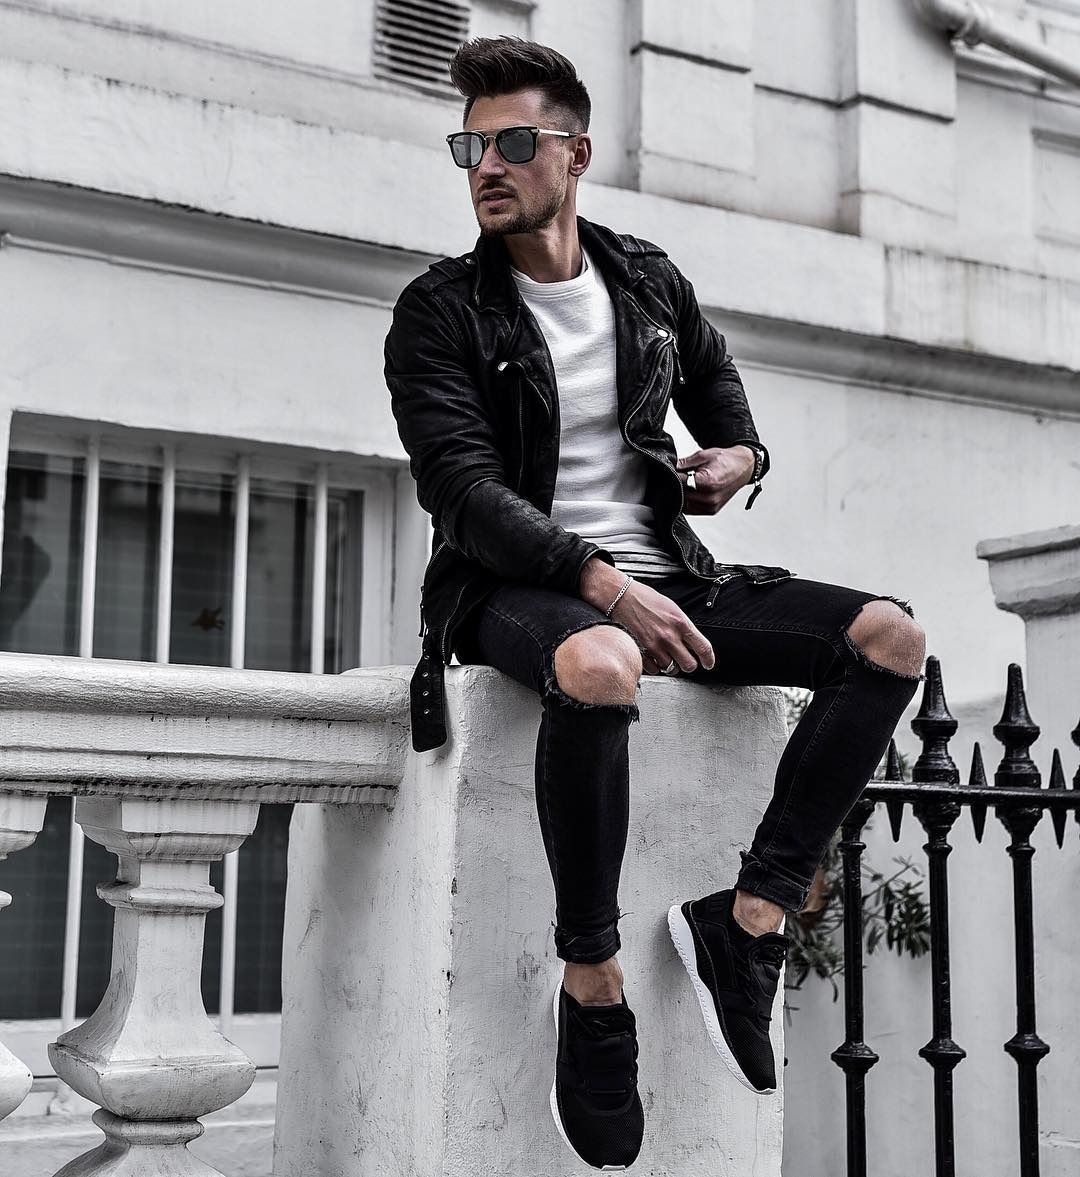 Inspire passion in your style with Calvin Klein men's clothing. Keep up with the latest trends in men's fashion with pieces such as the bomber jacket, ripped jeans for men, or bear timeless staples like the men's polo or jean jacket.